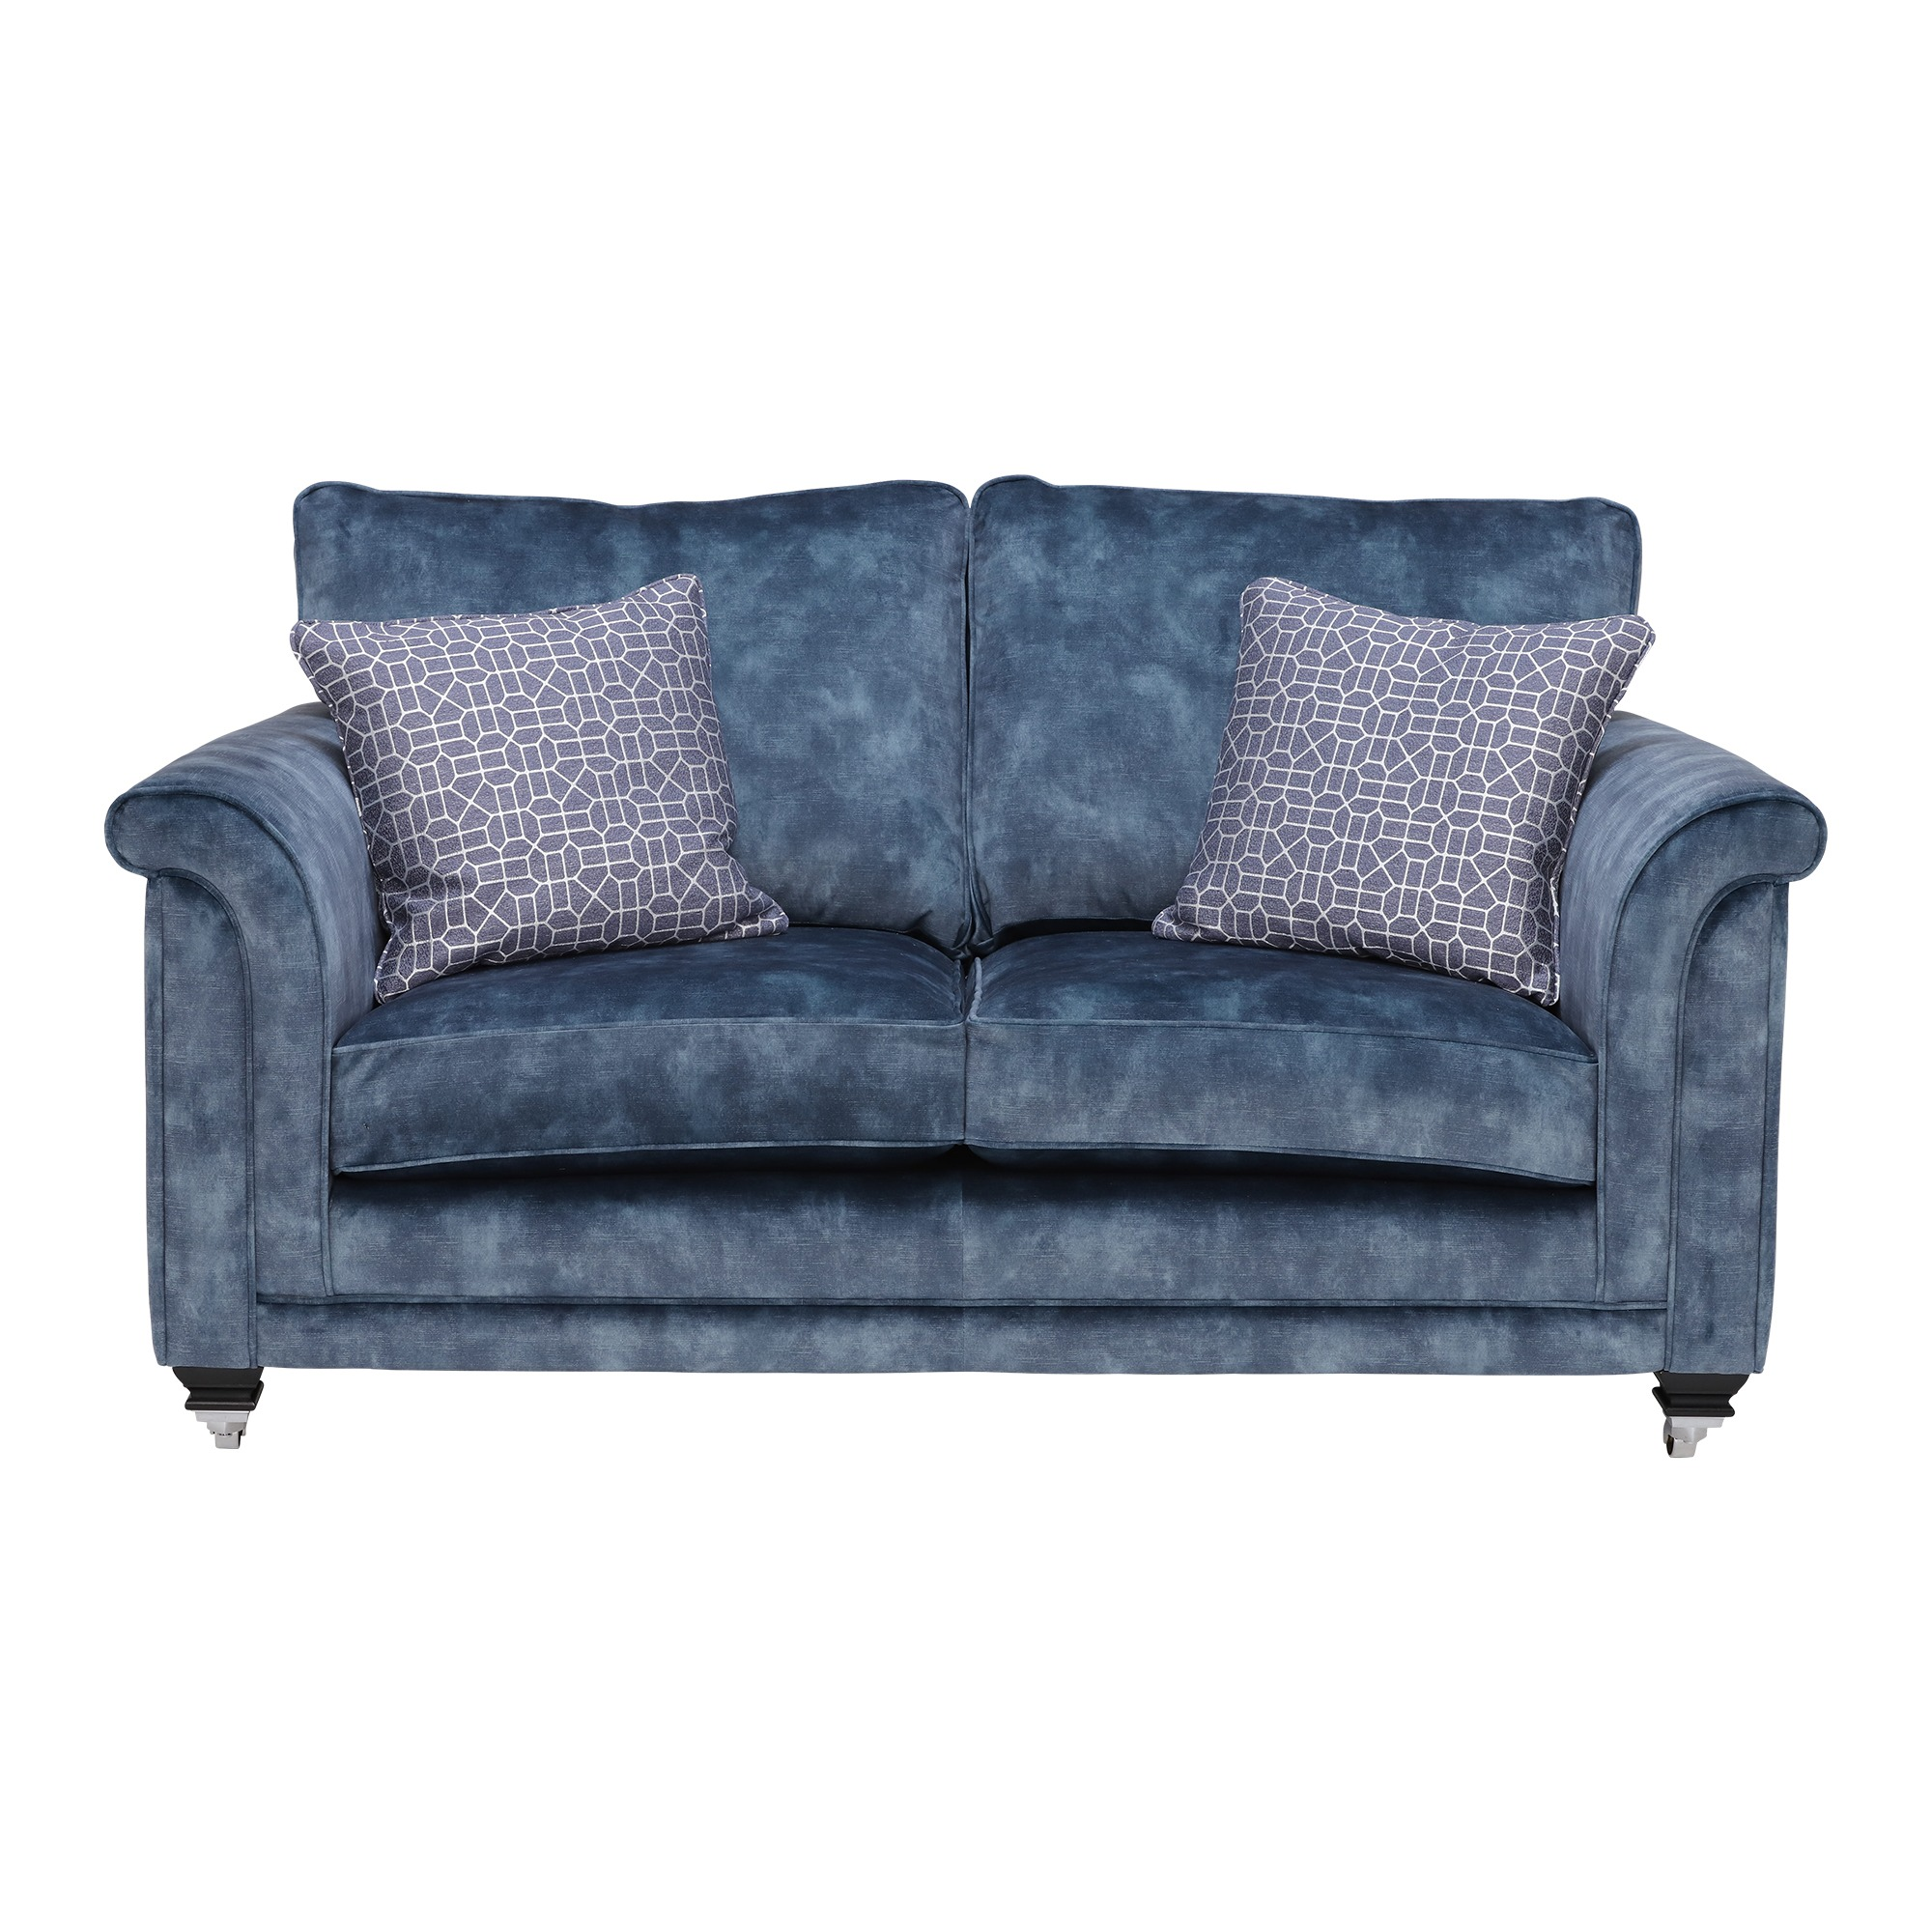 FIDELMA 2 SEATER - FRONT DETAIL